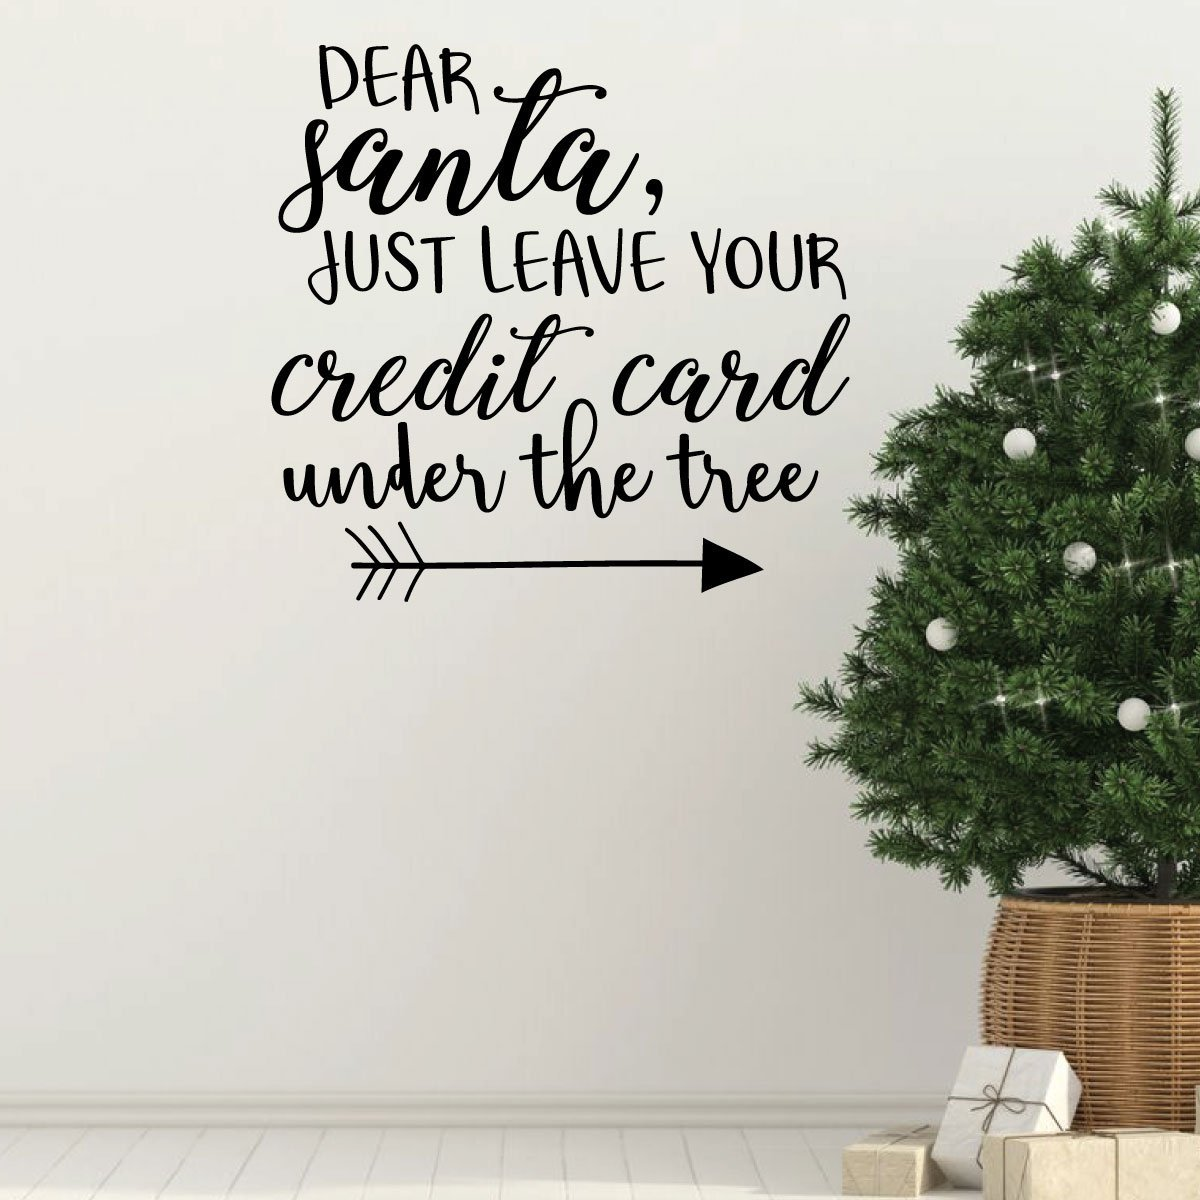 Christmas Wall Decals Removable.Christmas Wall Decal Dear Vinyl Decor Wall Decal